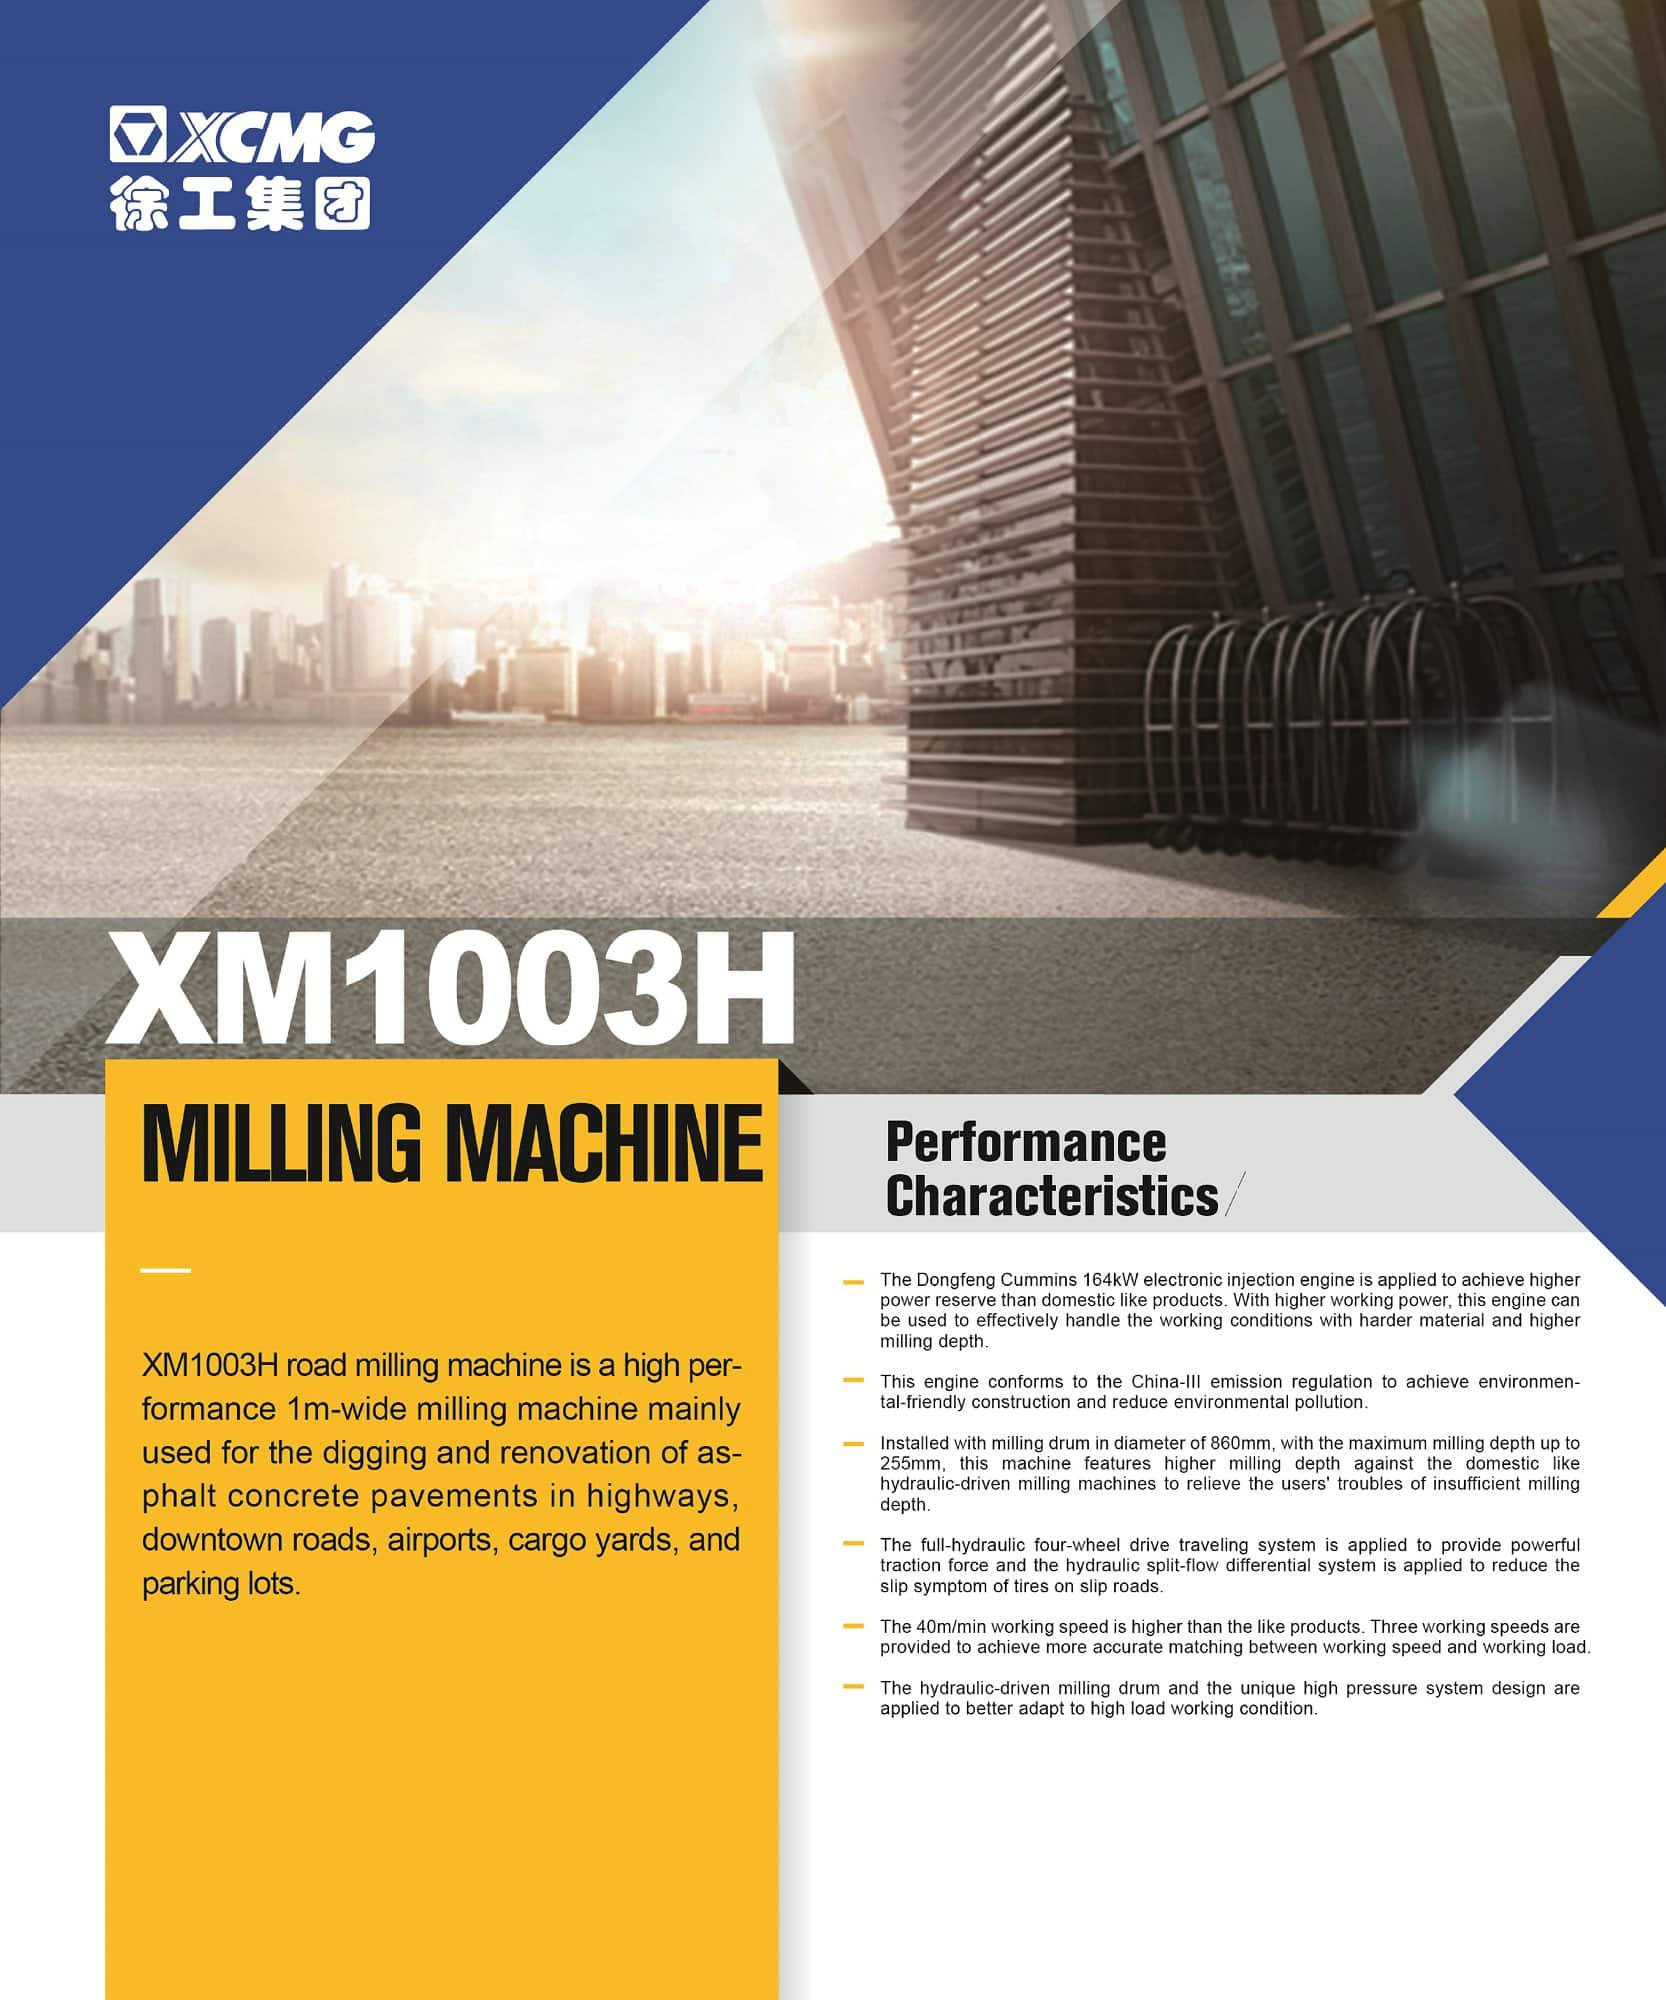 XCMG official XM1003H milling Machine for sale